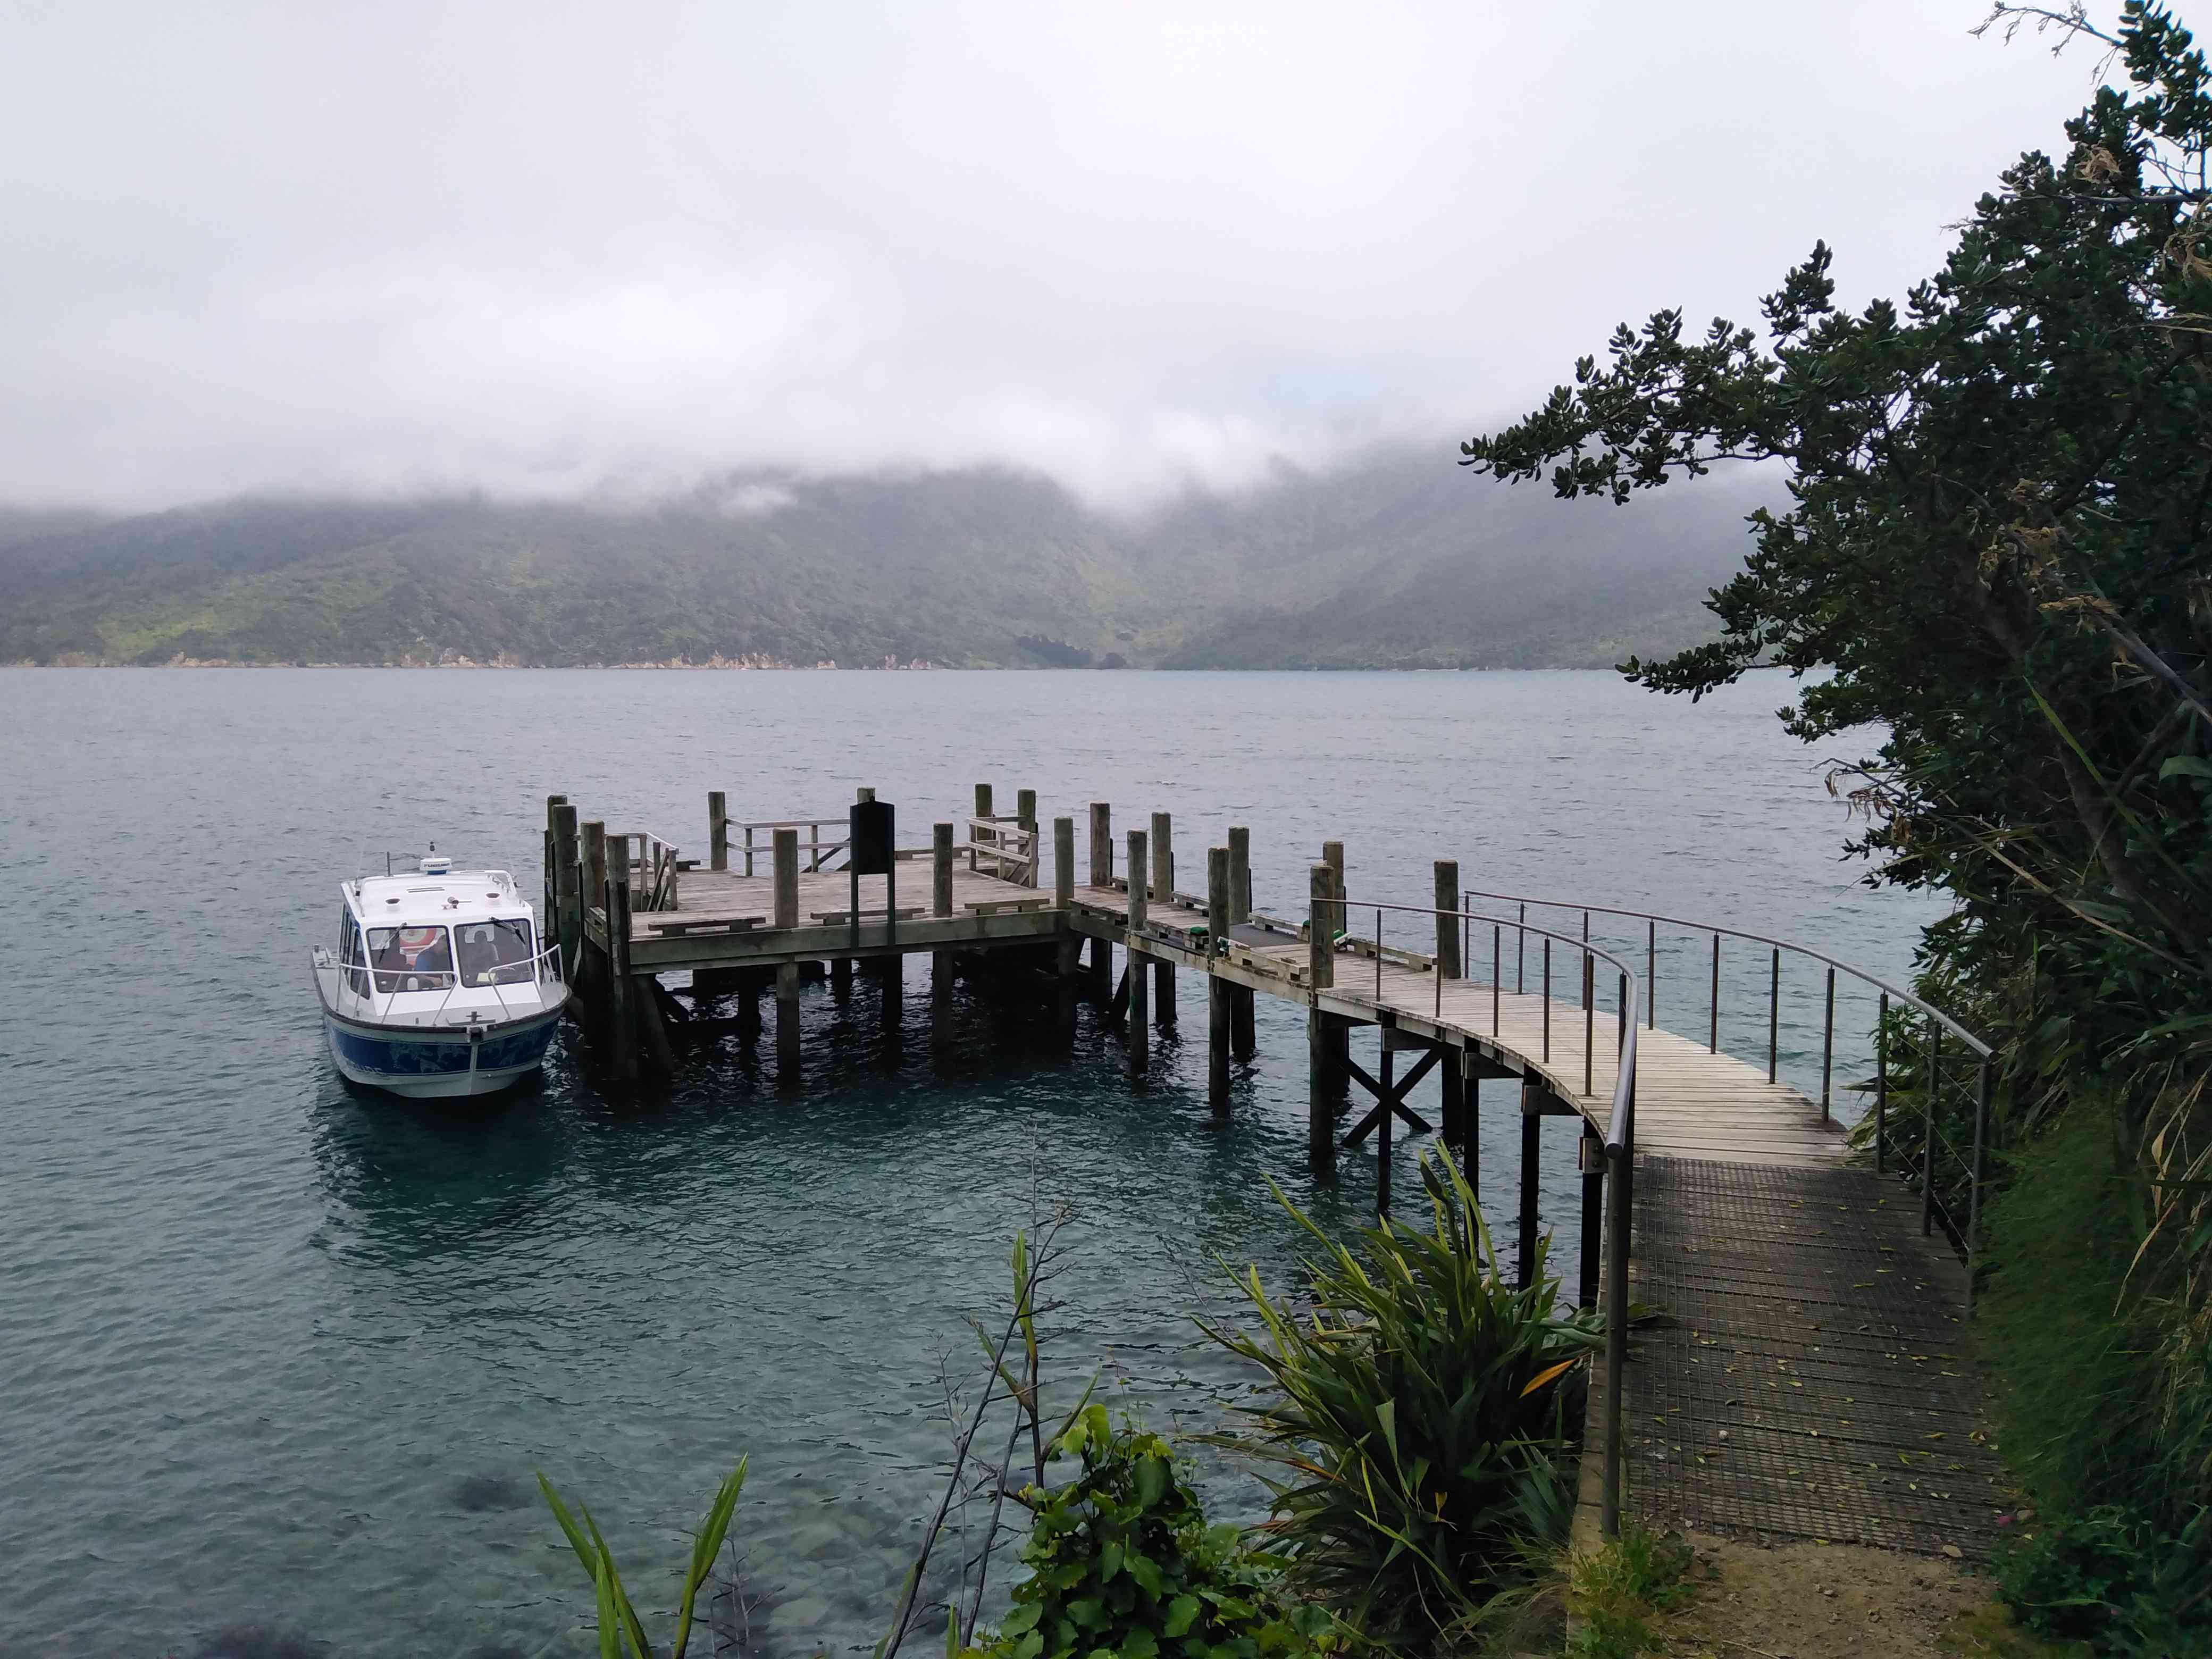 Wooden jetty and small boat in the sea with surrounding bushes